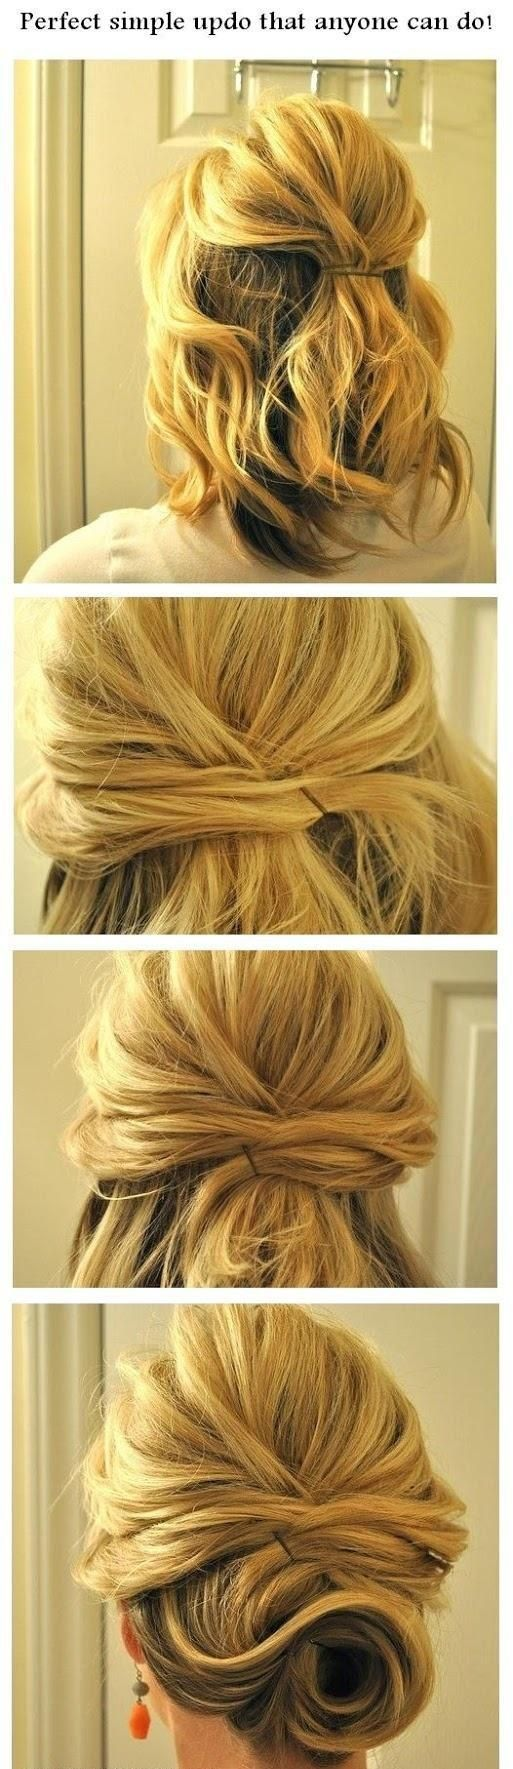 Perfect simple updo that anyone can do hairstyles tutorial